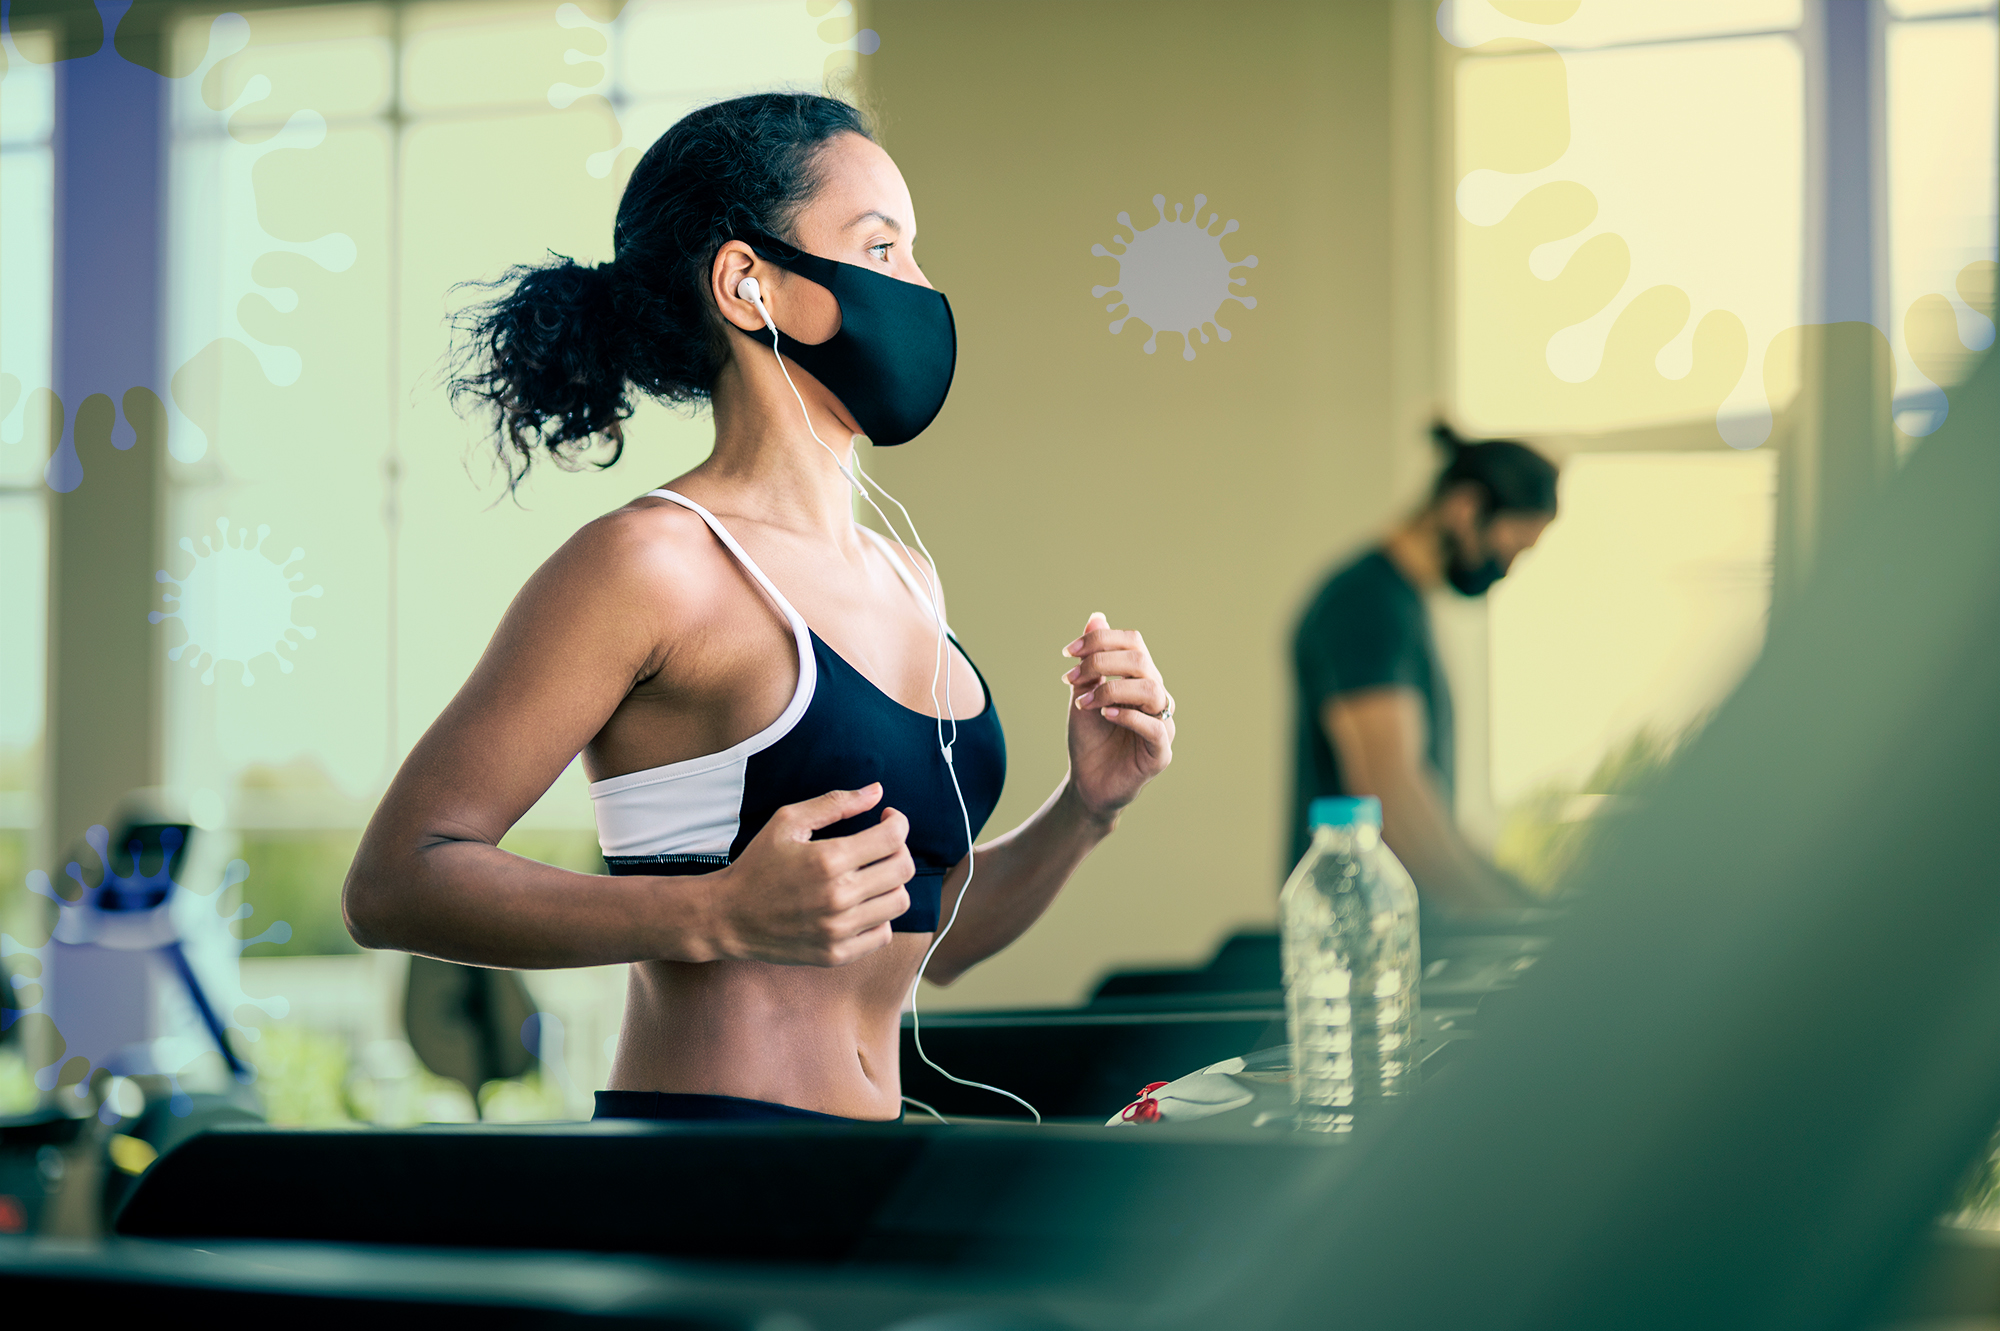 Athlete workout exercise at gym after pandemic reopening. They are running on treadmill and wearing a protective face mask